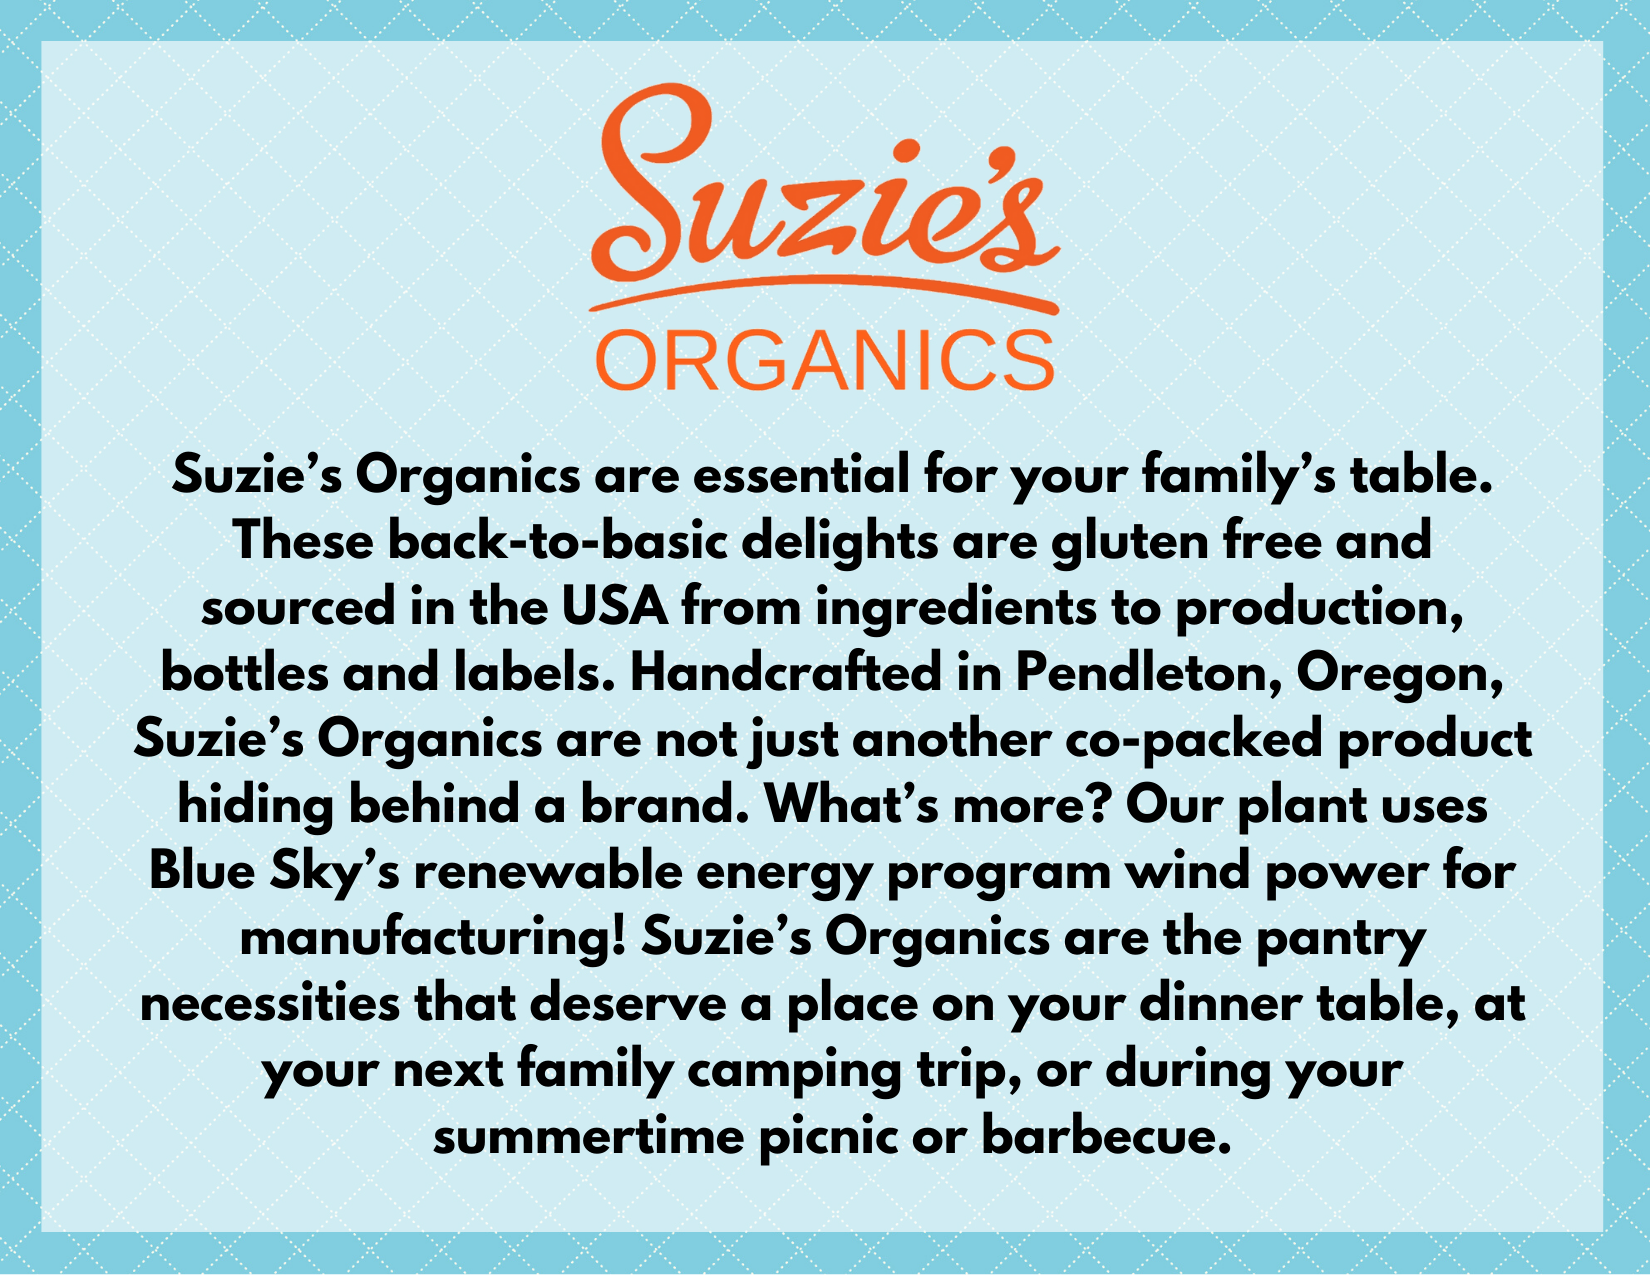 suzie-s-organics-are-essential-for-y.png